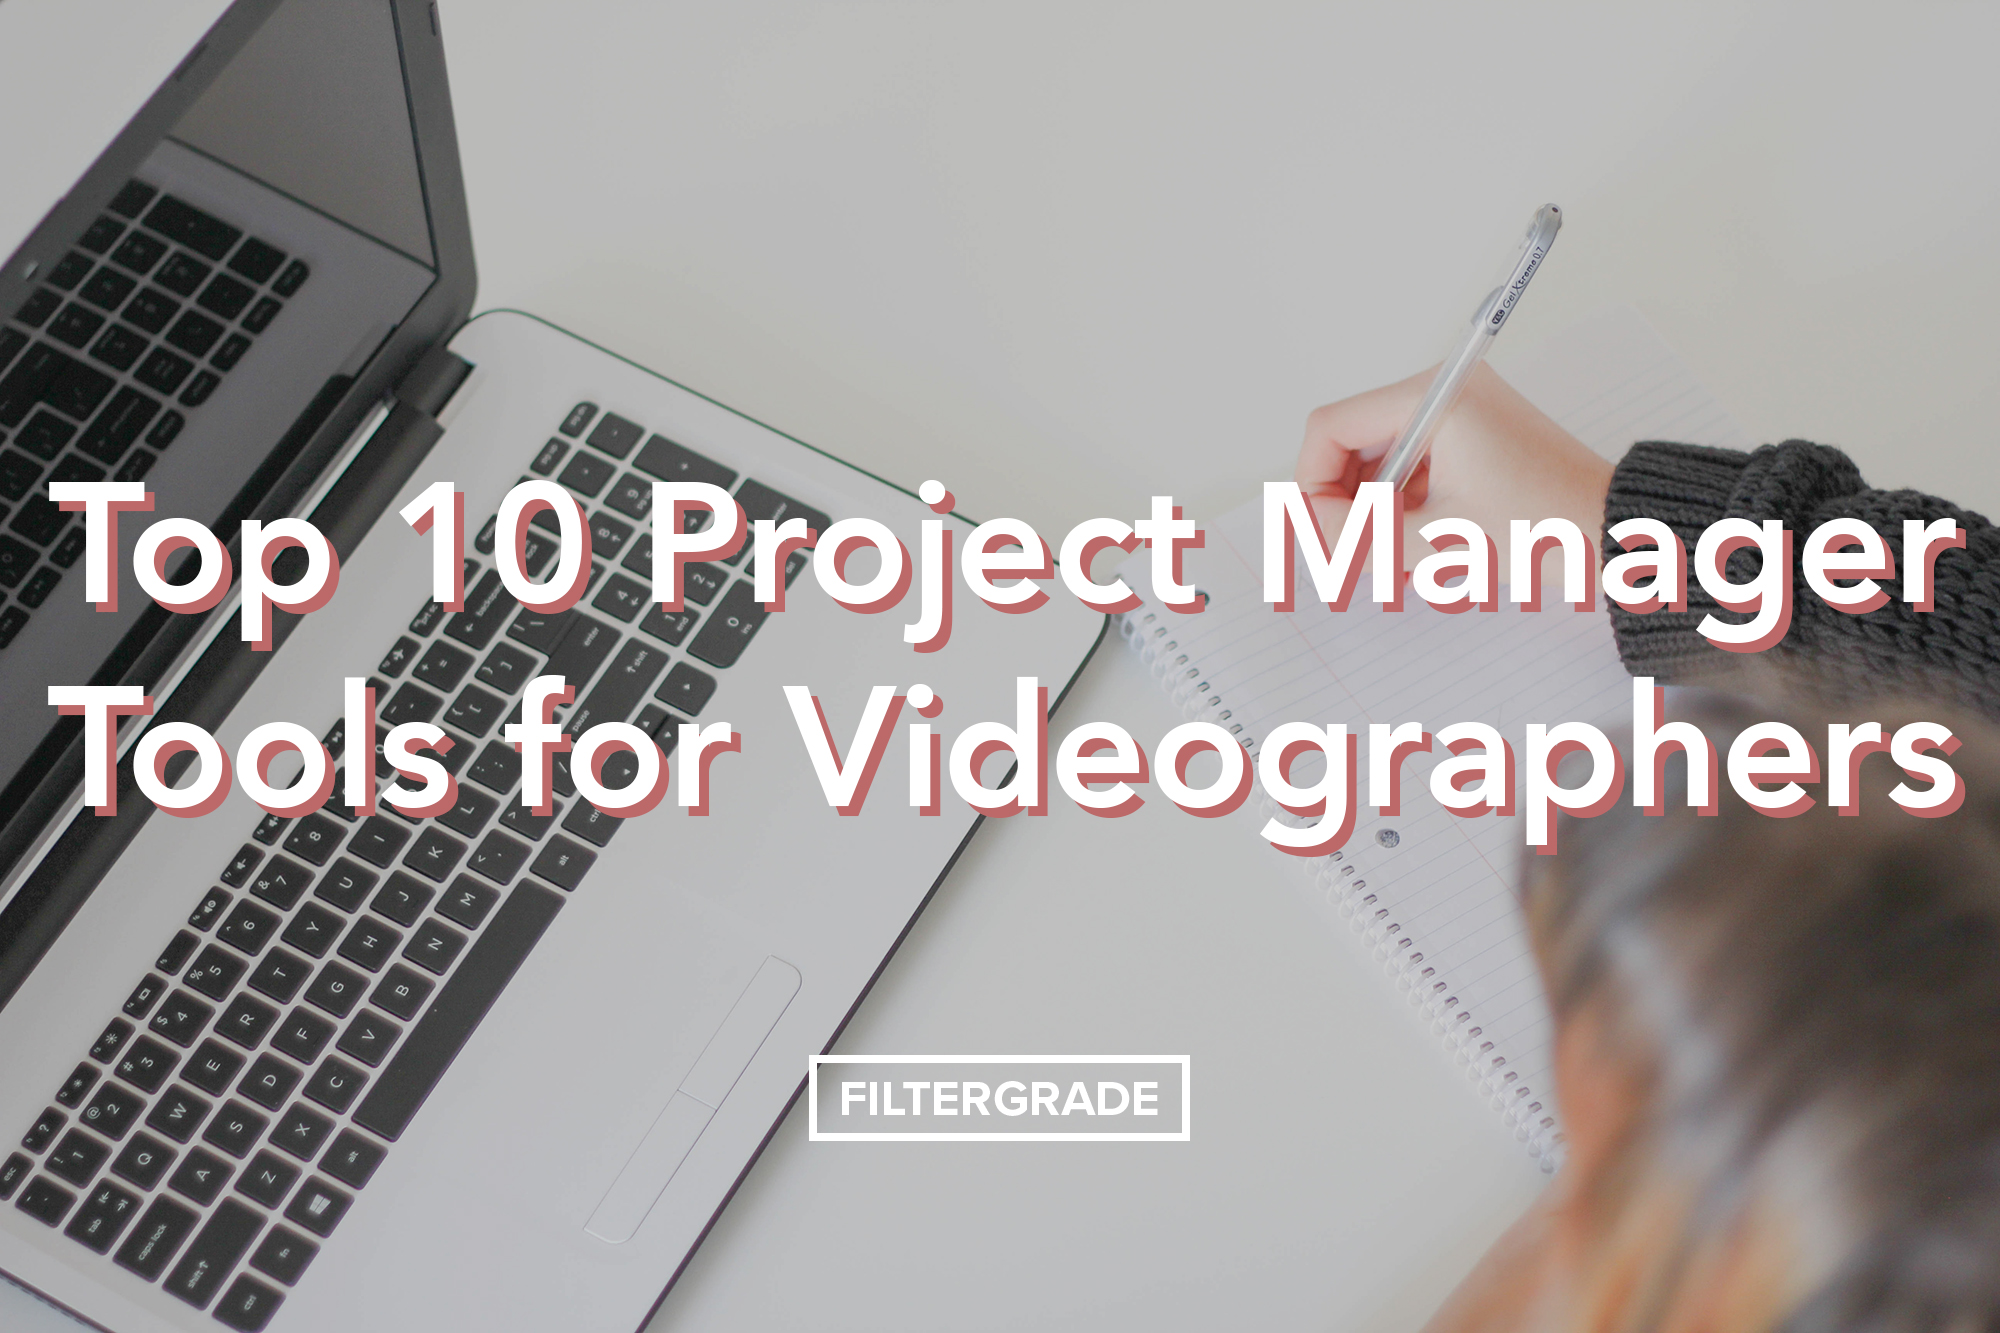 Top 10 Project Manager Tools for Videographers - FilterGrade